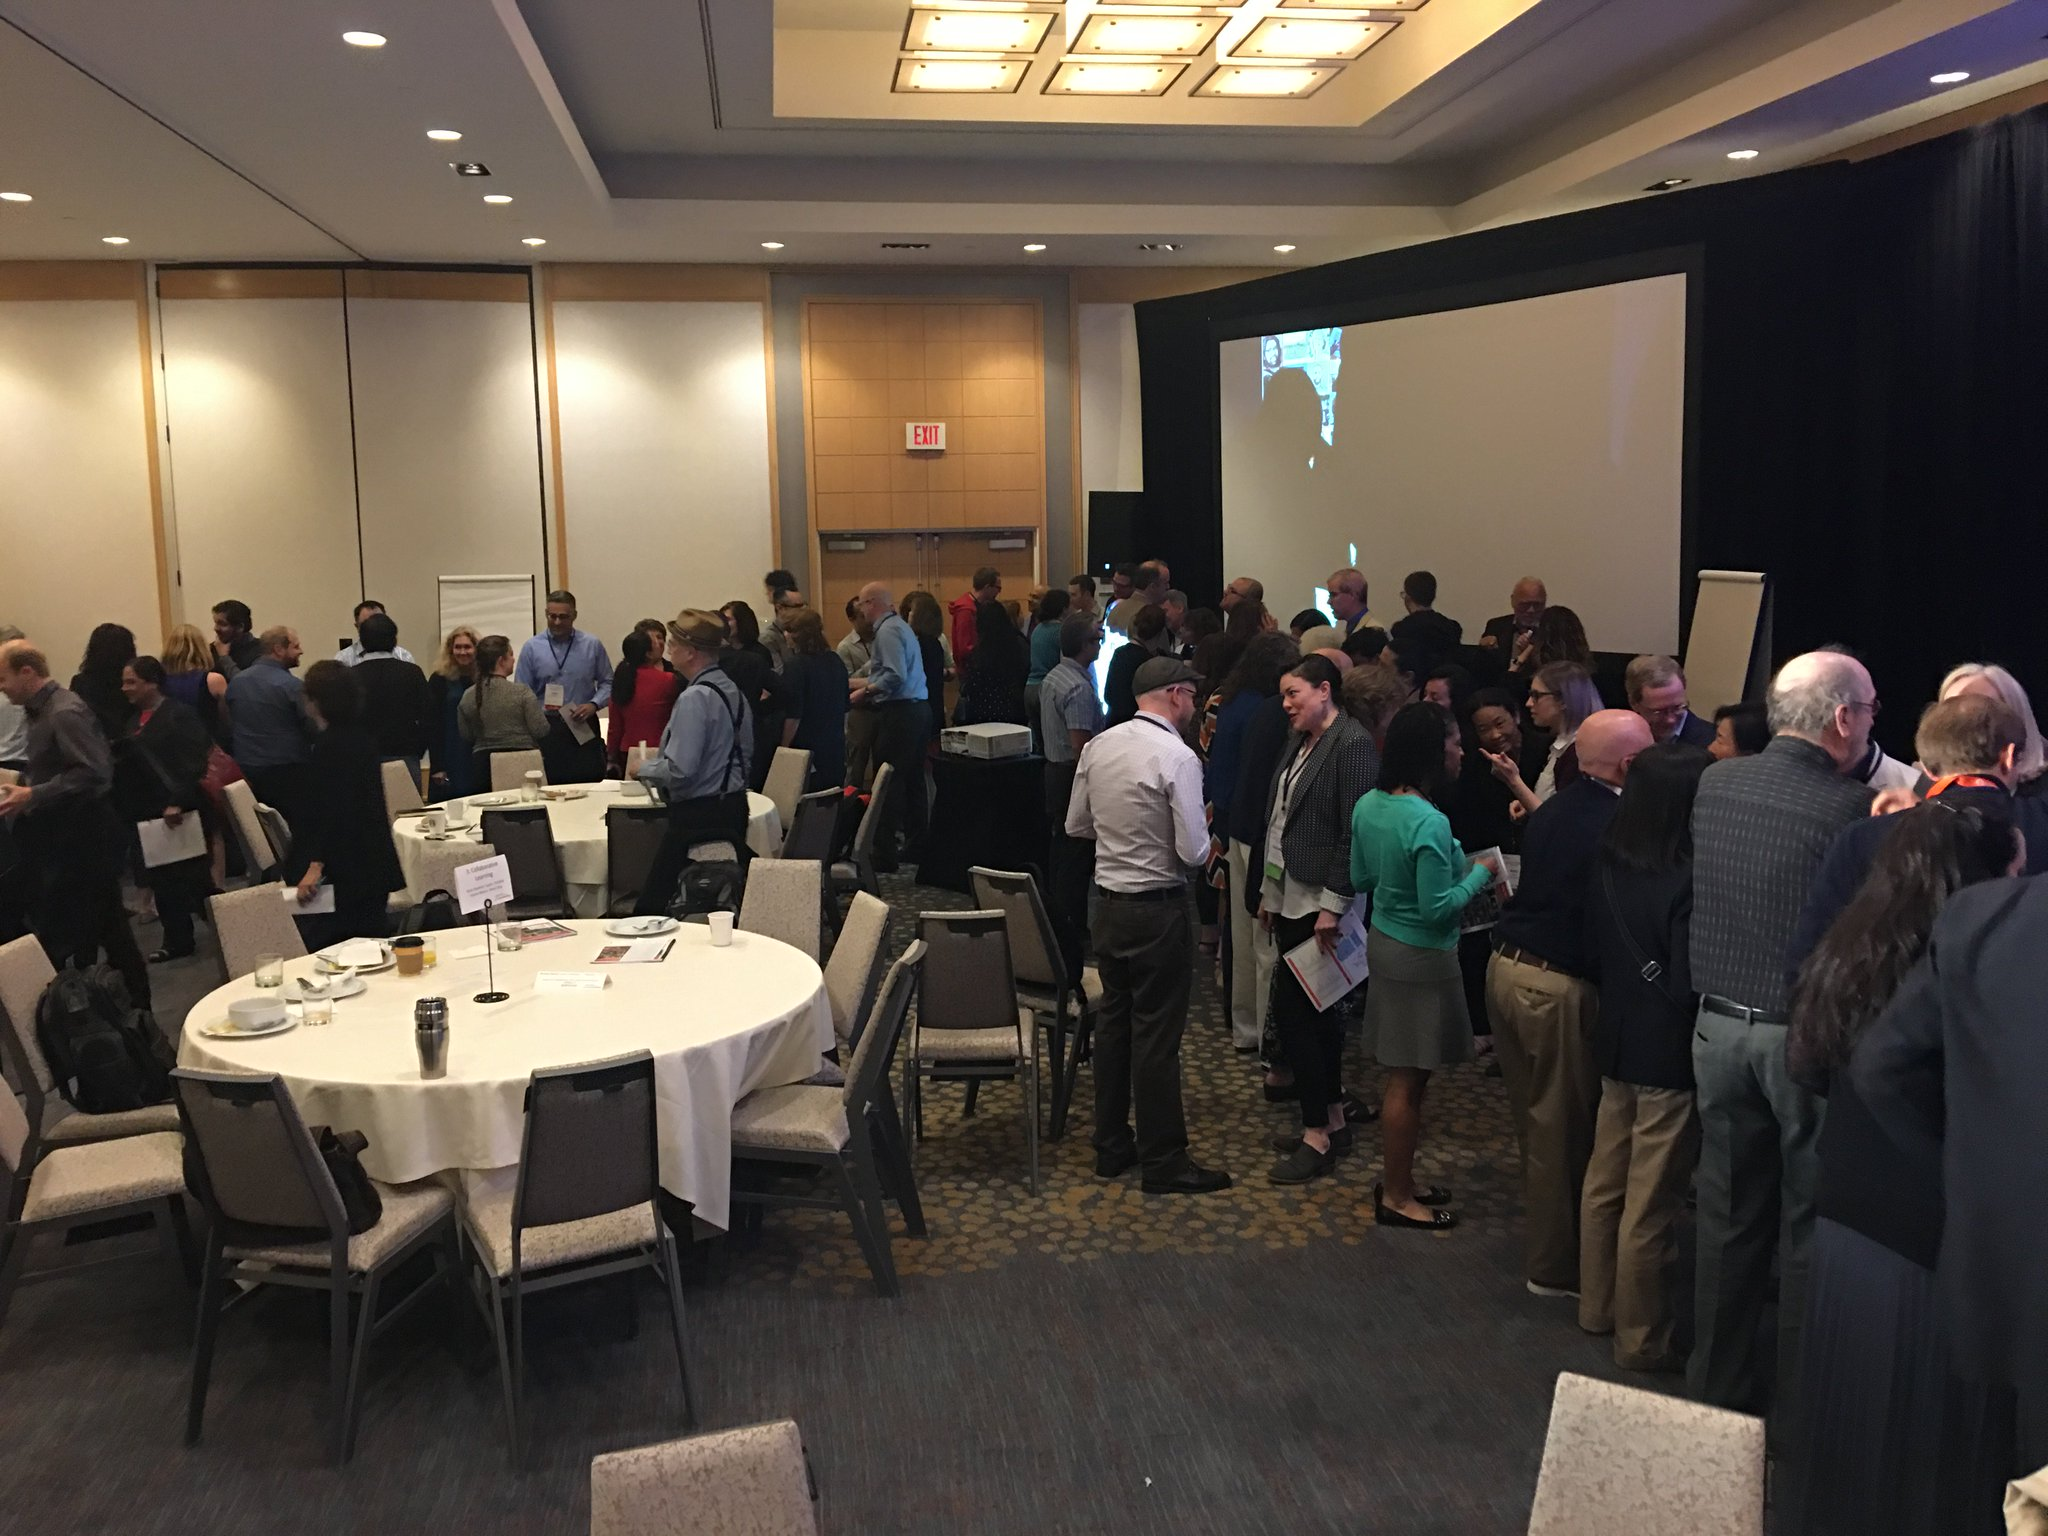 Networking activity underway! @CIRCLCenter #NSFCL17 https://t.co/4dJlhXtN0E